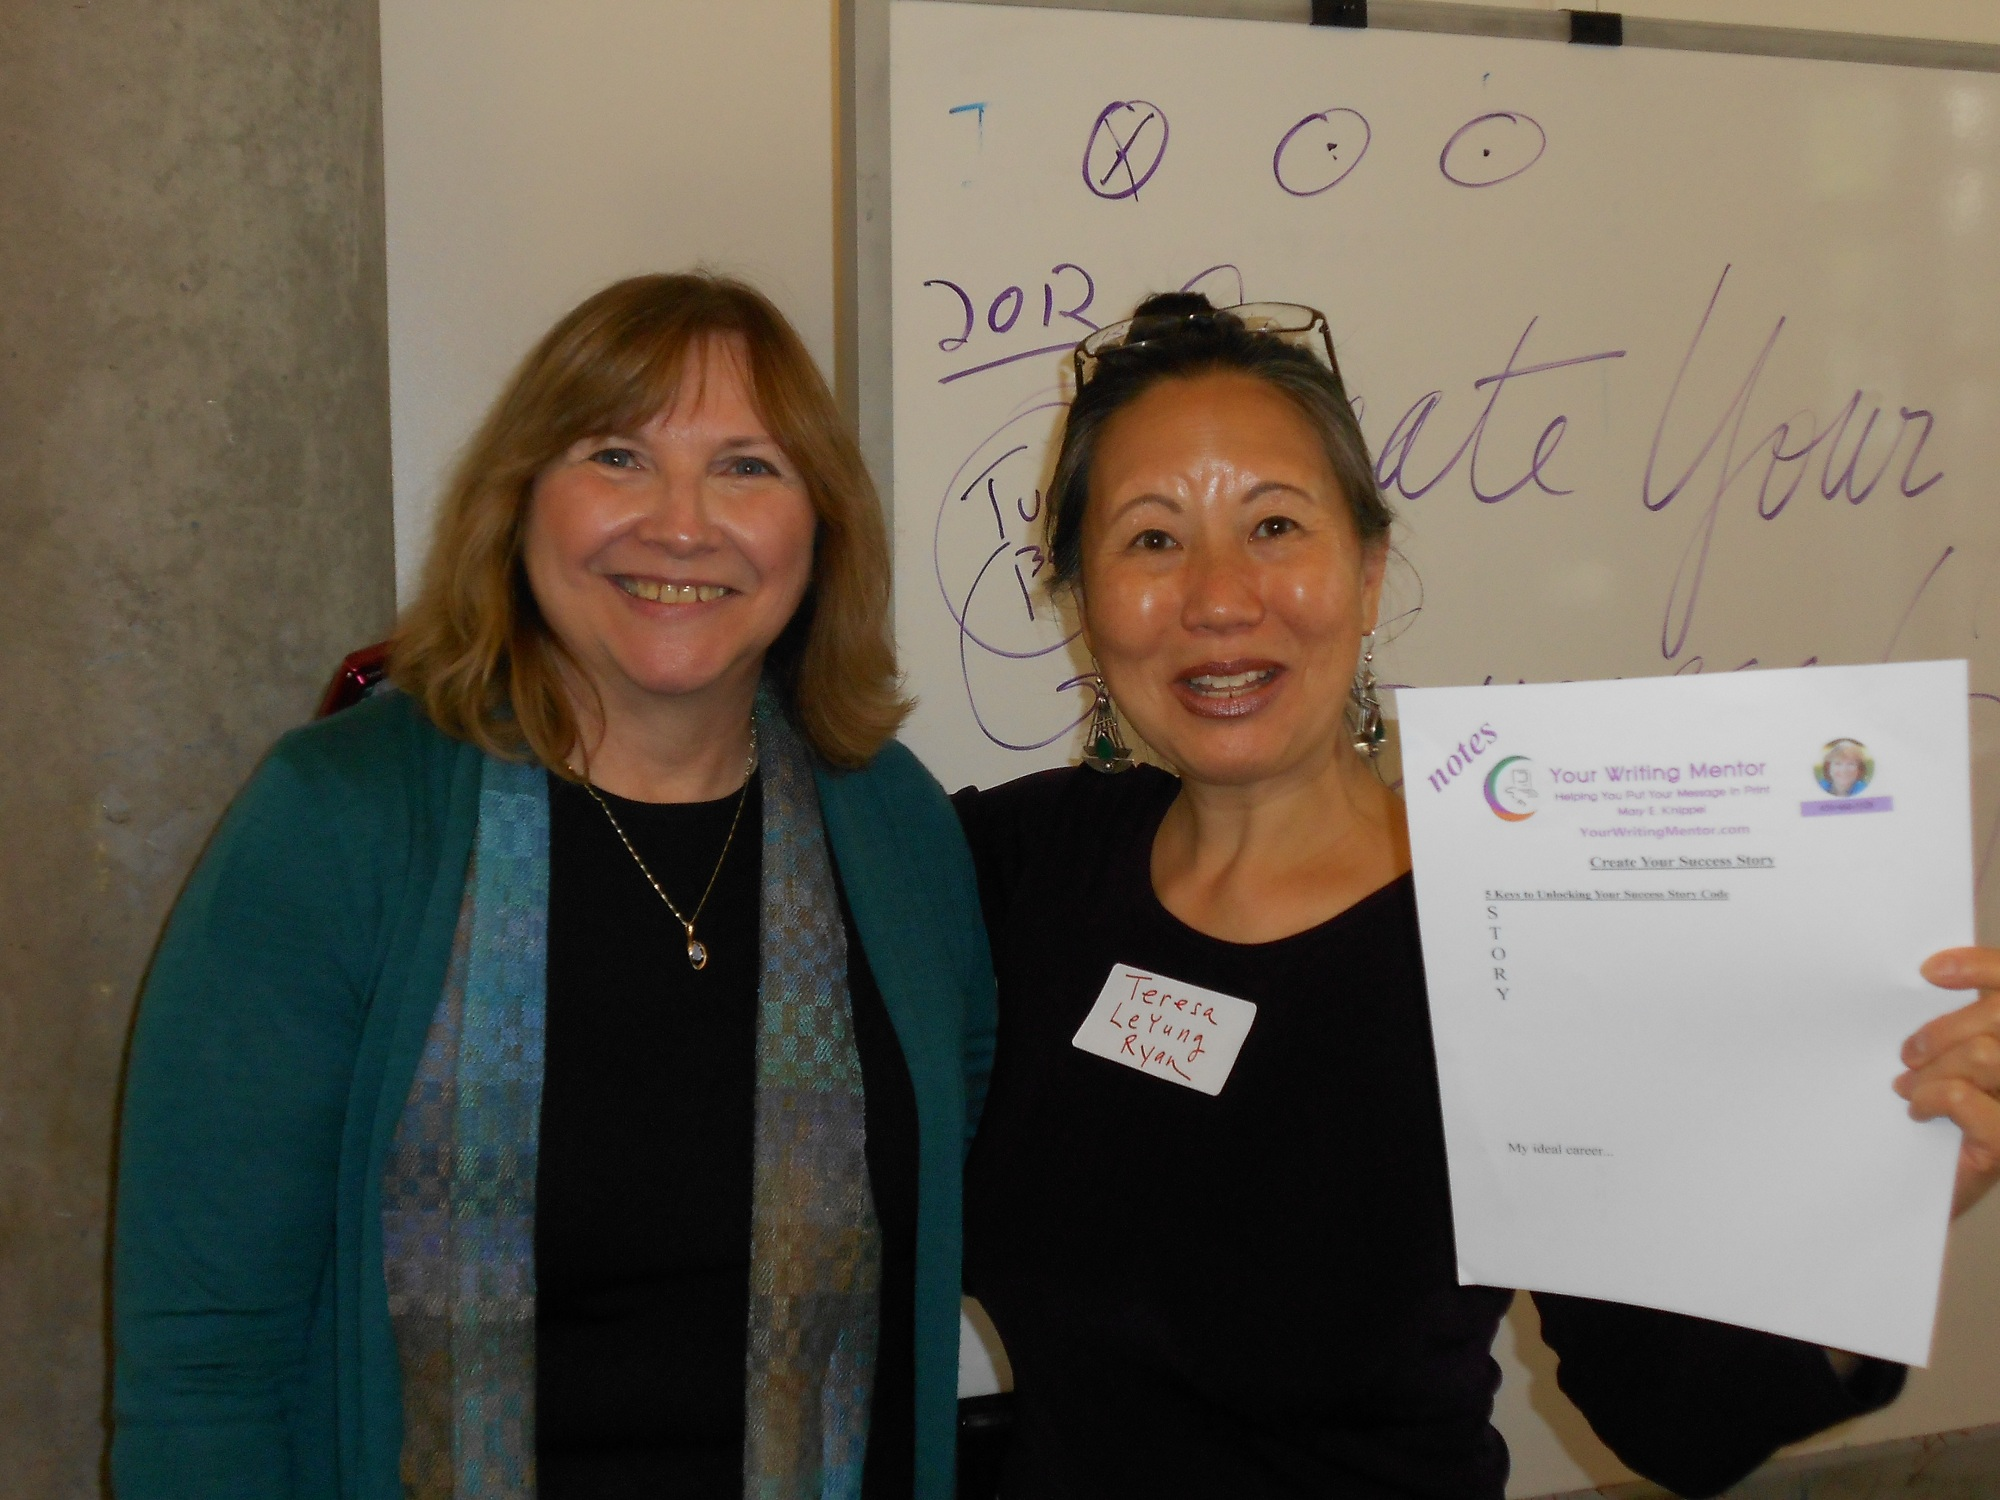 Writing Mentor Mary E. Knippel and Writing Career Coach Teresa LeYung-Ryan